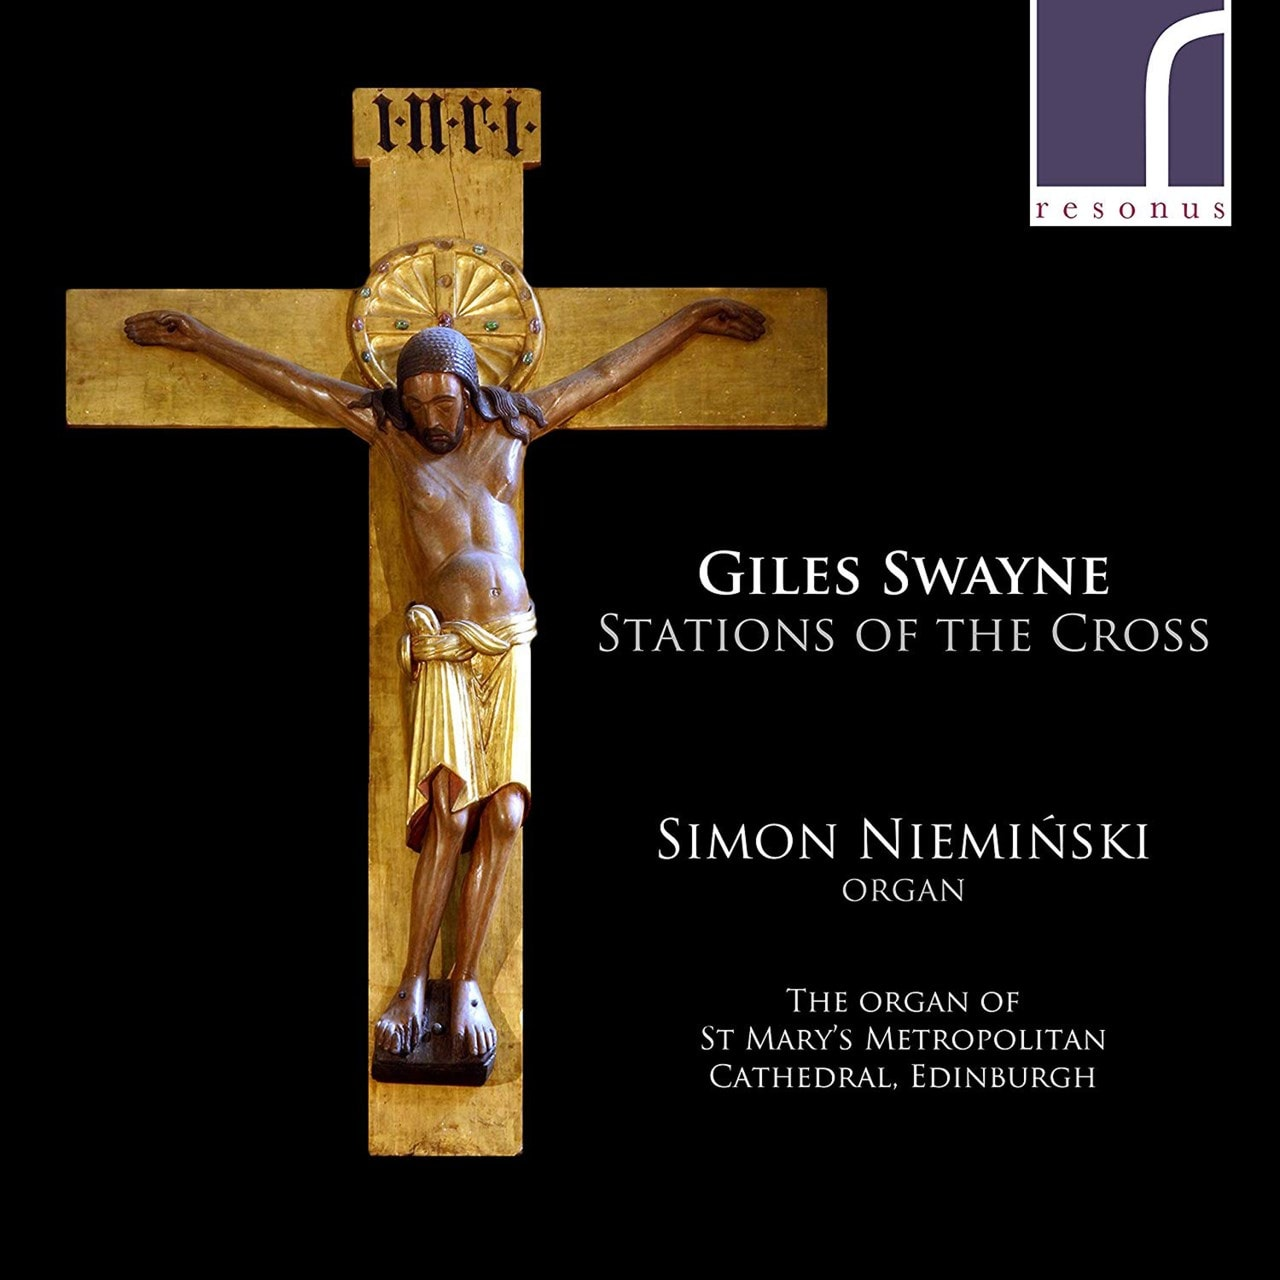 Giles Swayne: Stations of the Cross - 1